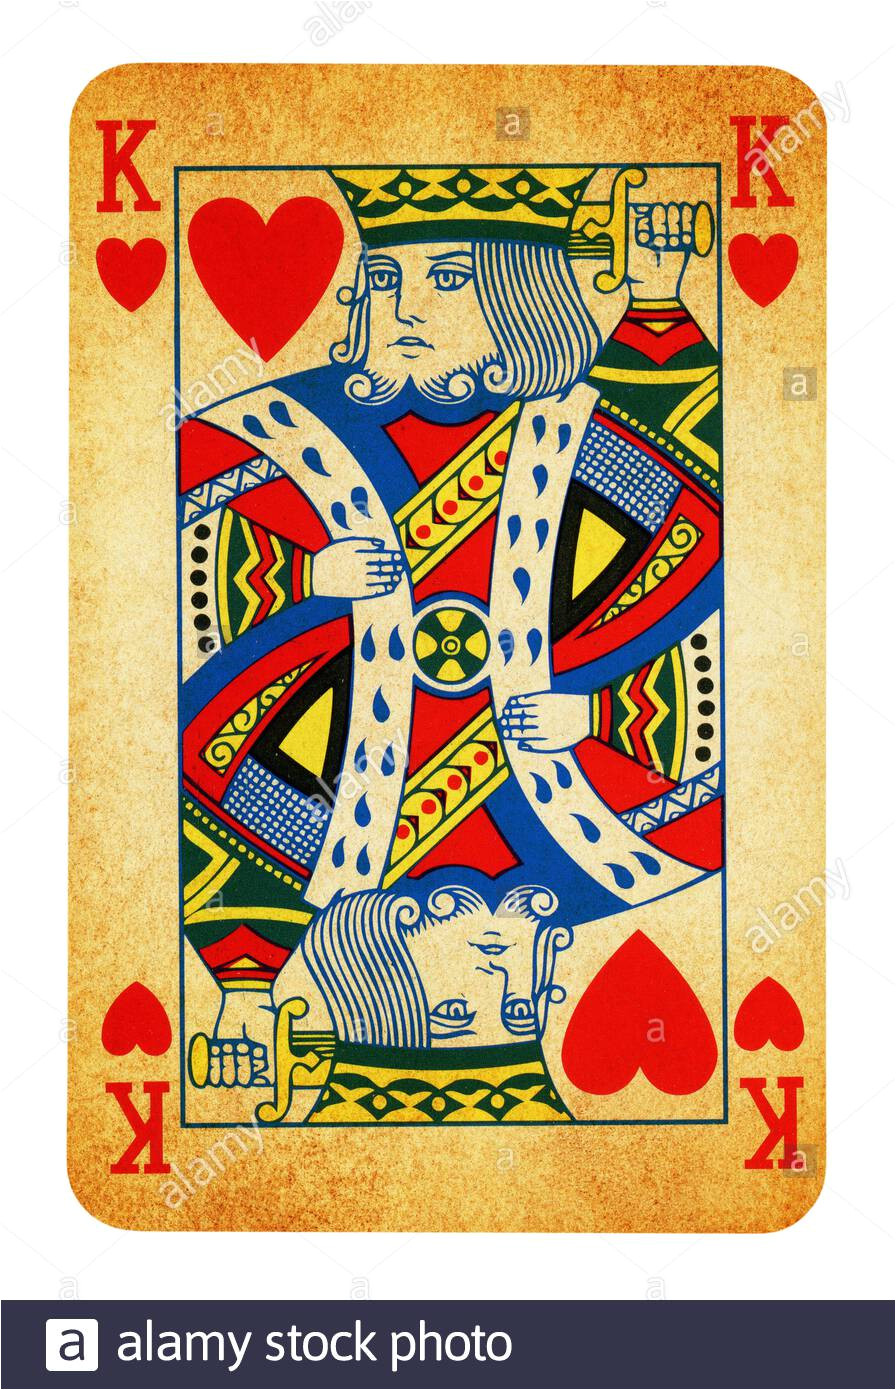 king of hearts vintage playing card isolated on white clipping path included 2ae2tcc jpg